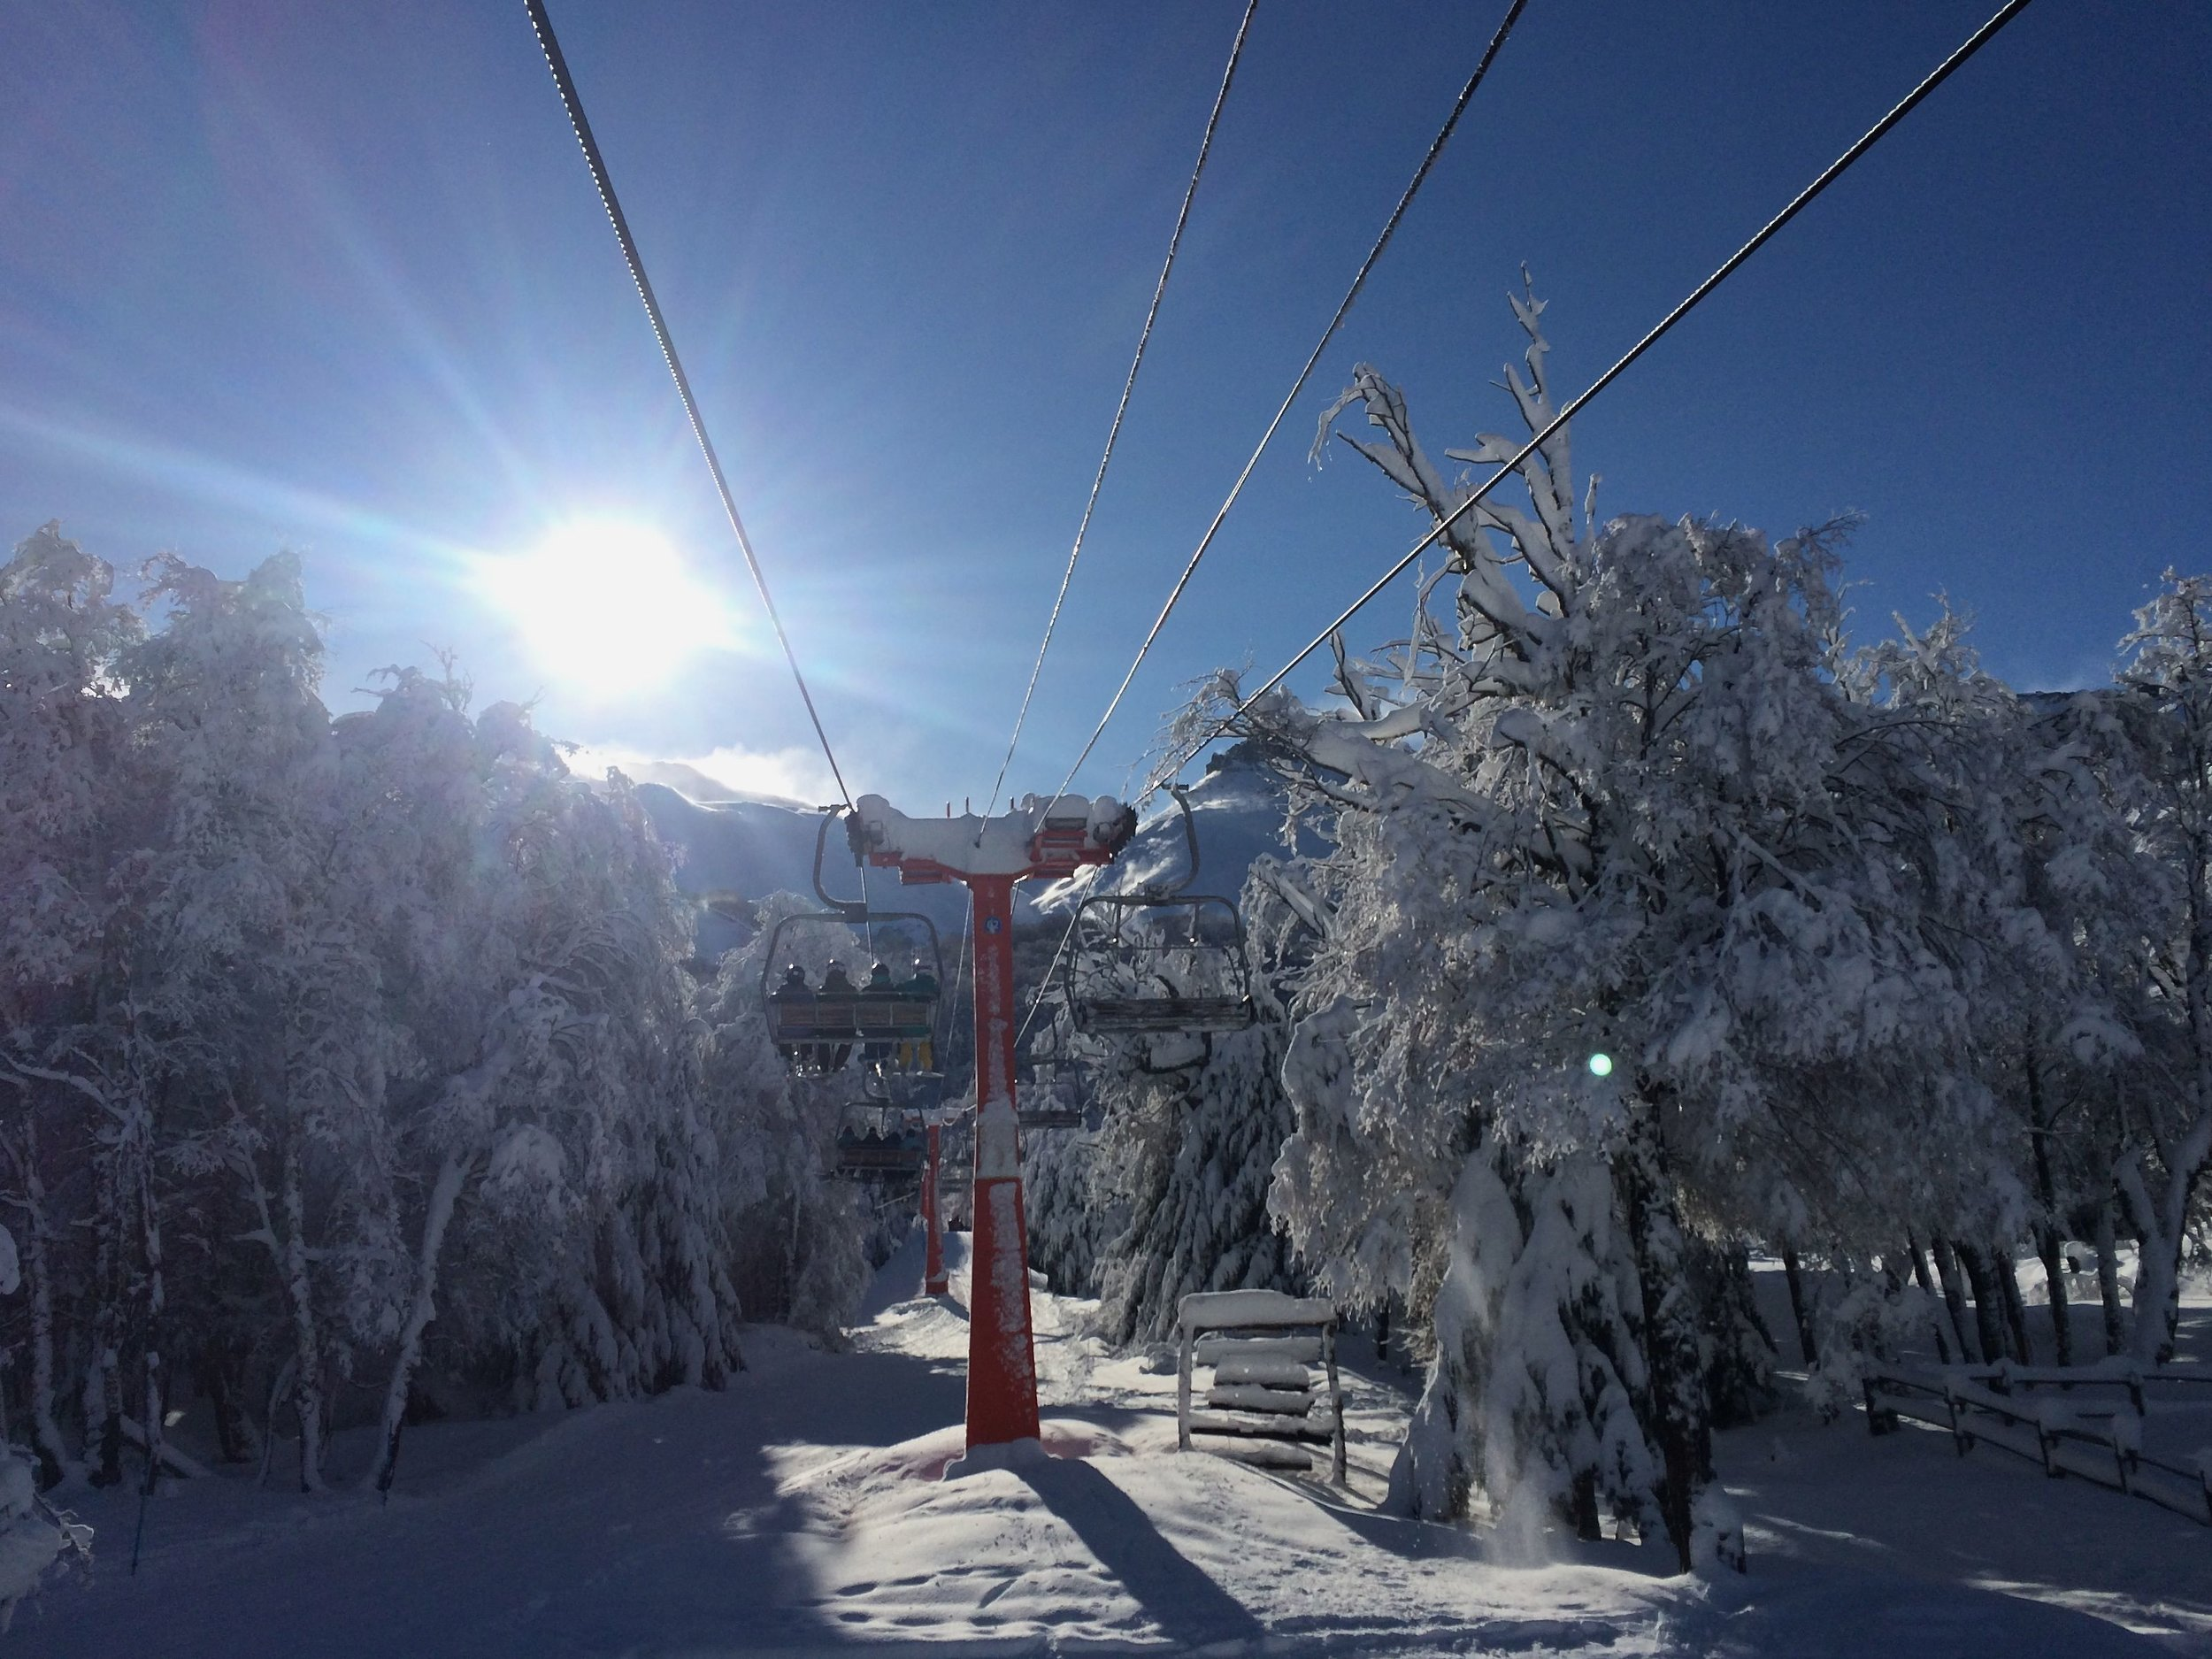 Riding the lift on our first sunny day with the campers in Chillan.